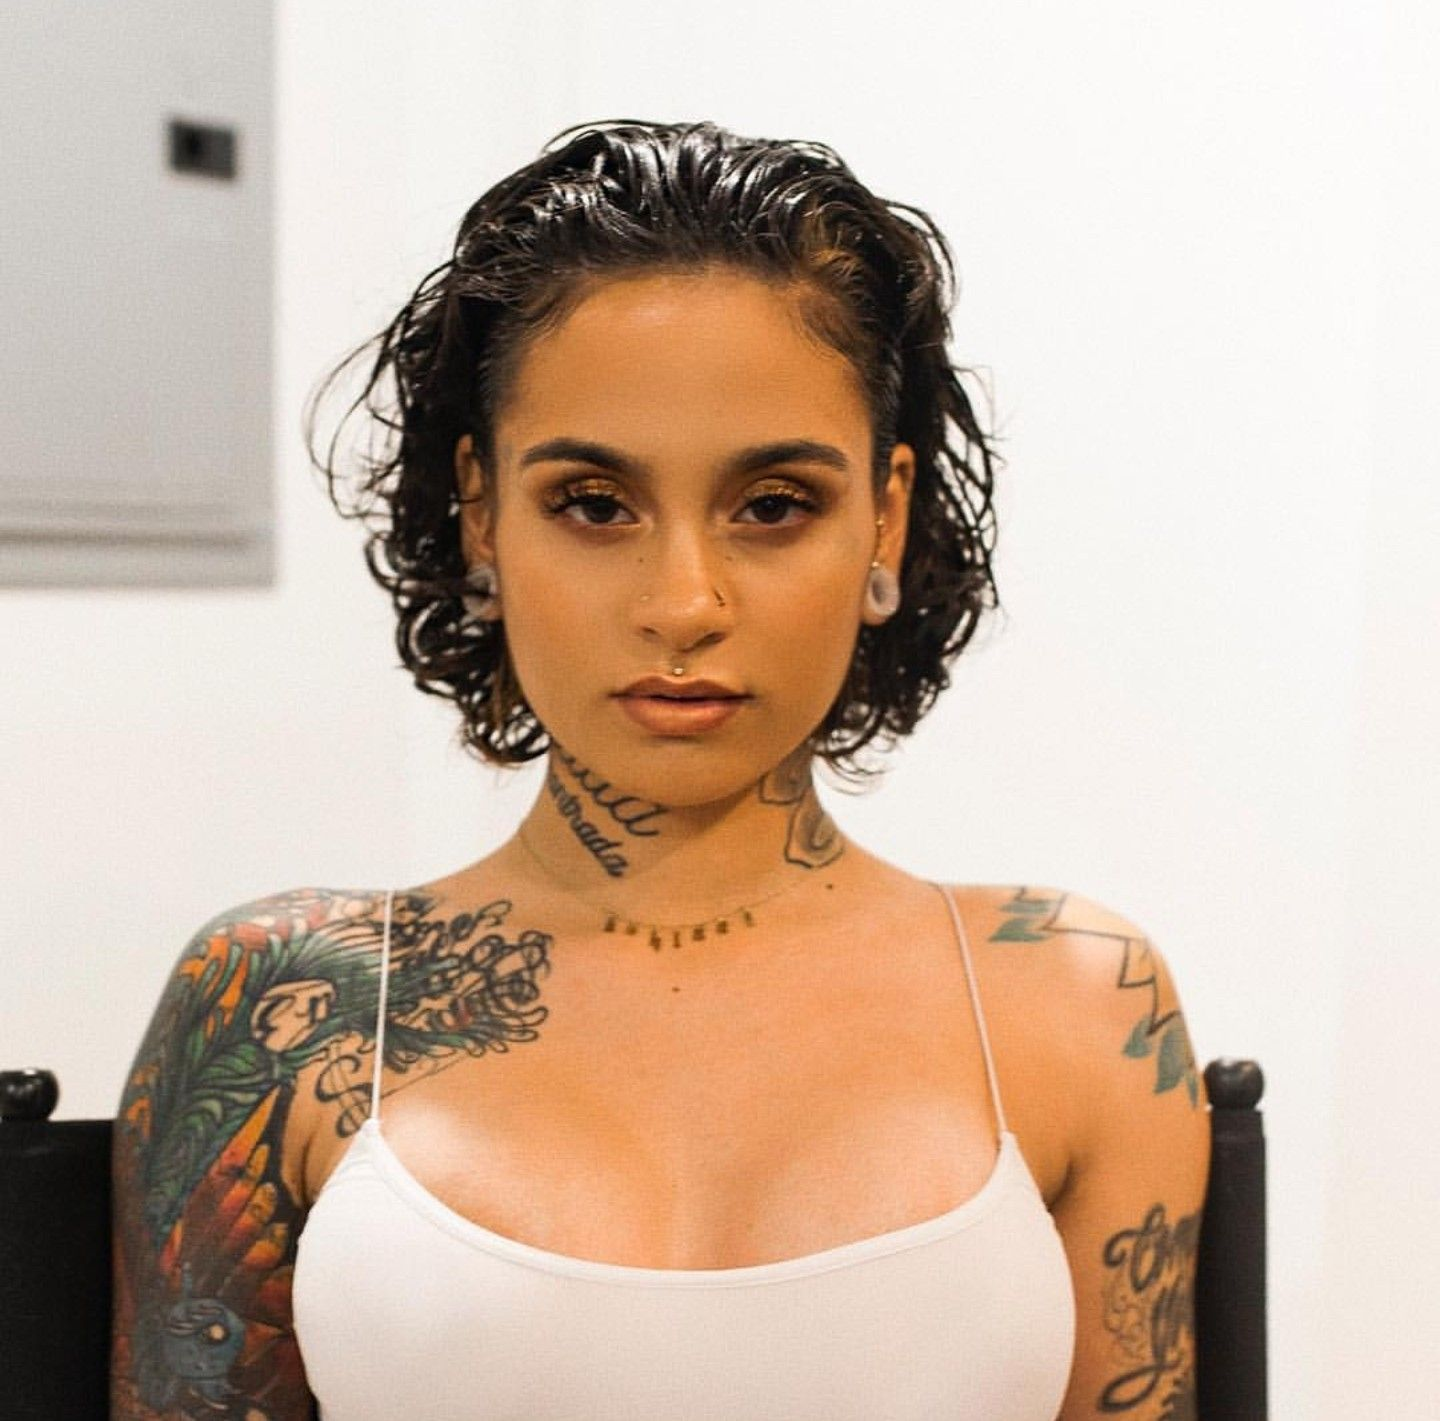 Natural Beauty Girl Wallpapers Kehlani By 718s February 2018 Kehlani In 2018